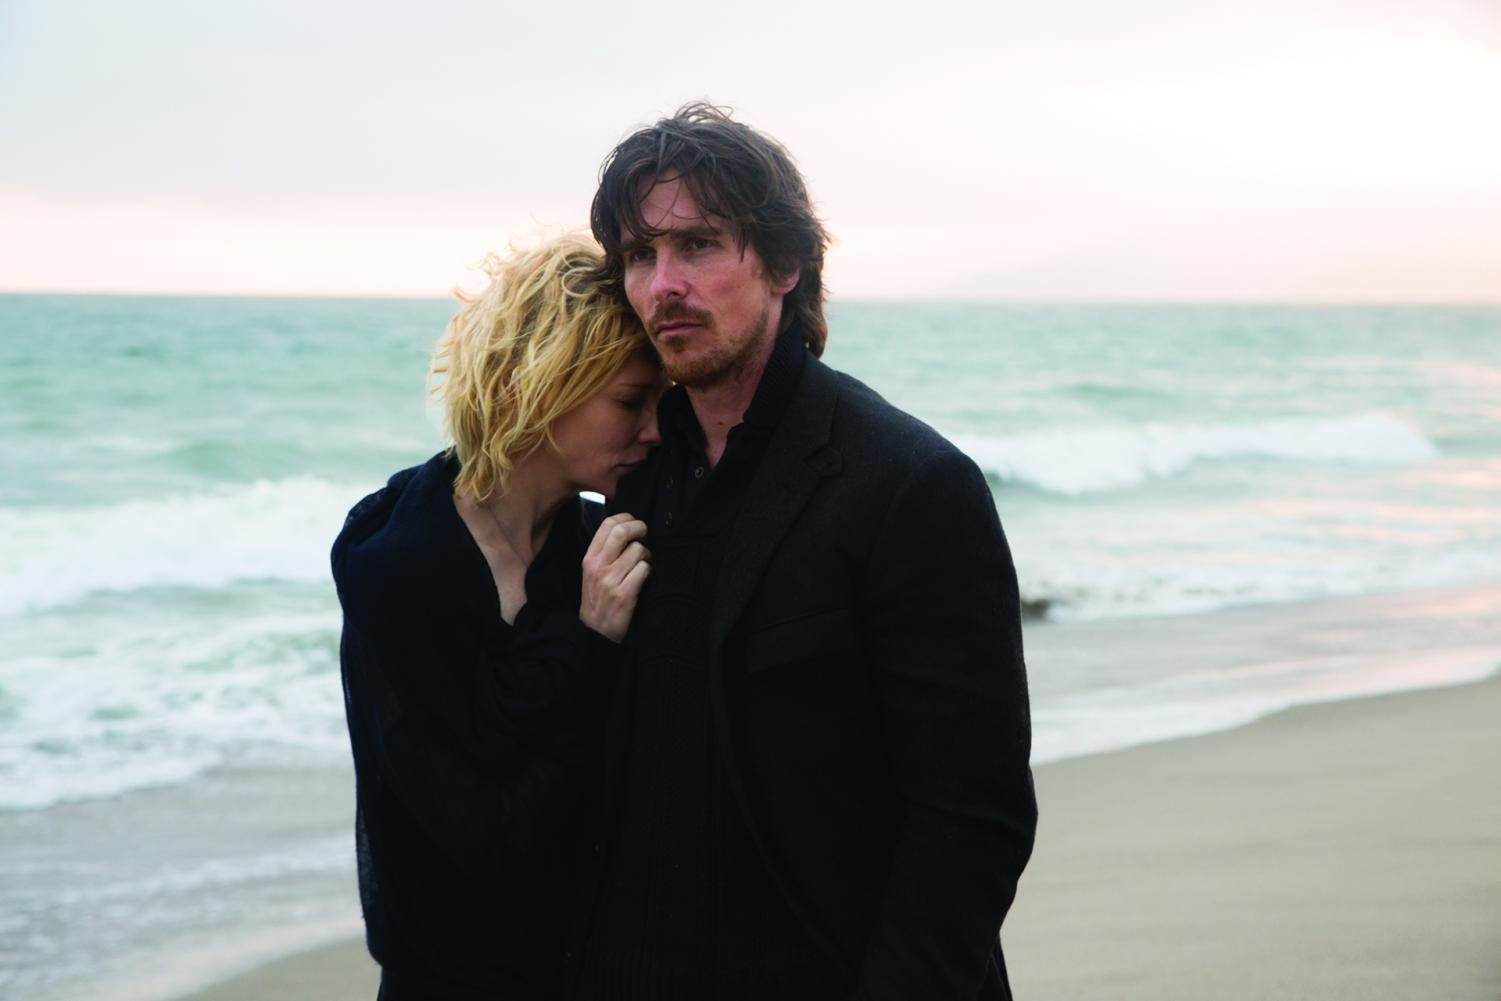 Cate Blanchett stars as 'Nancy' and Christian Bale as 'Rick' in Terrence Malick's drama